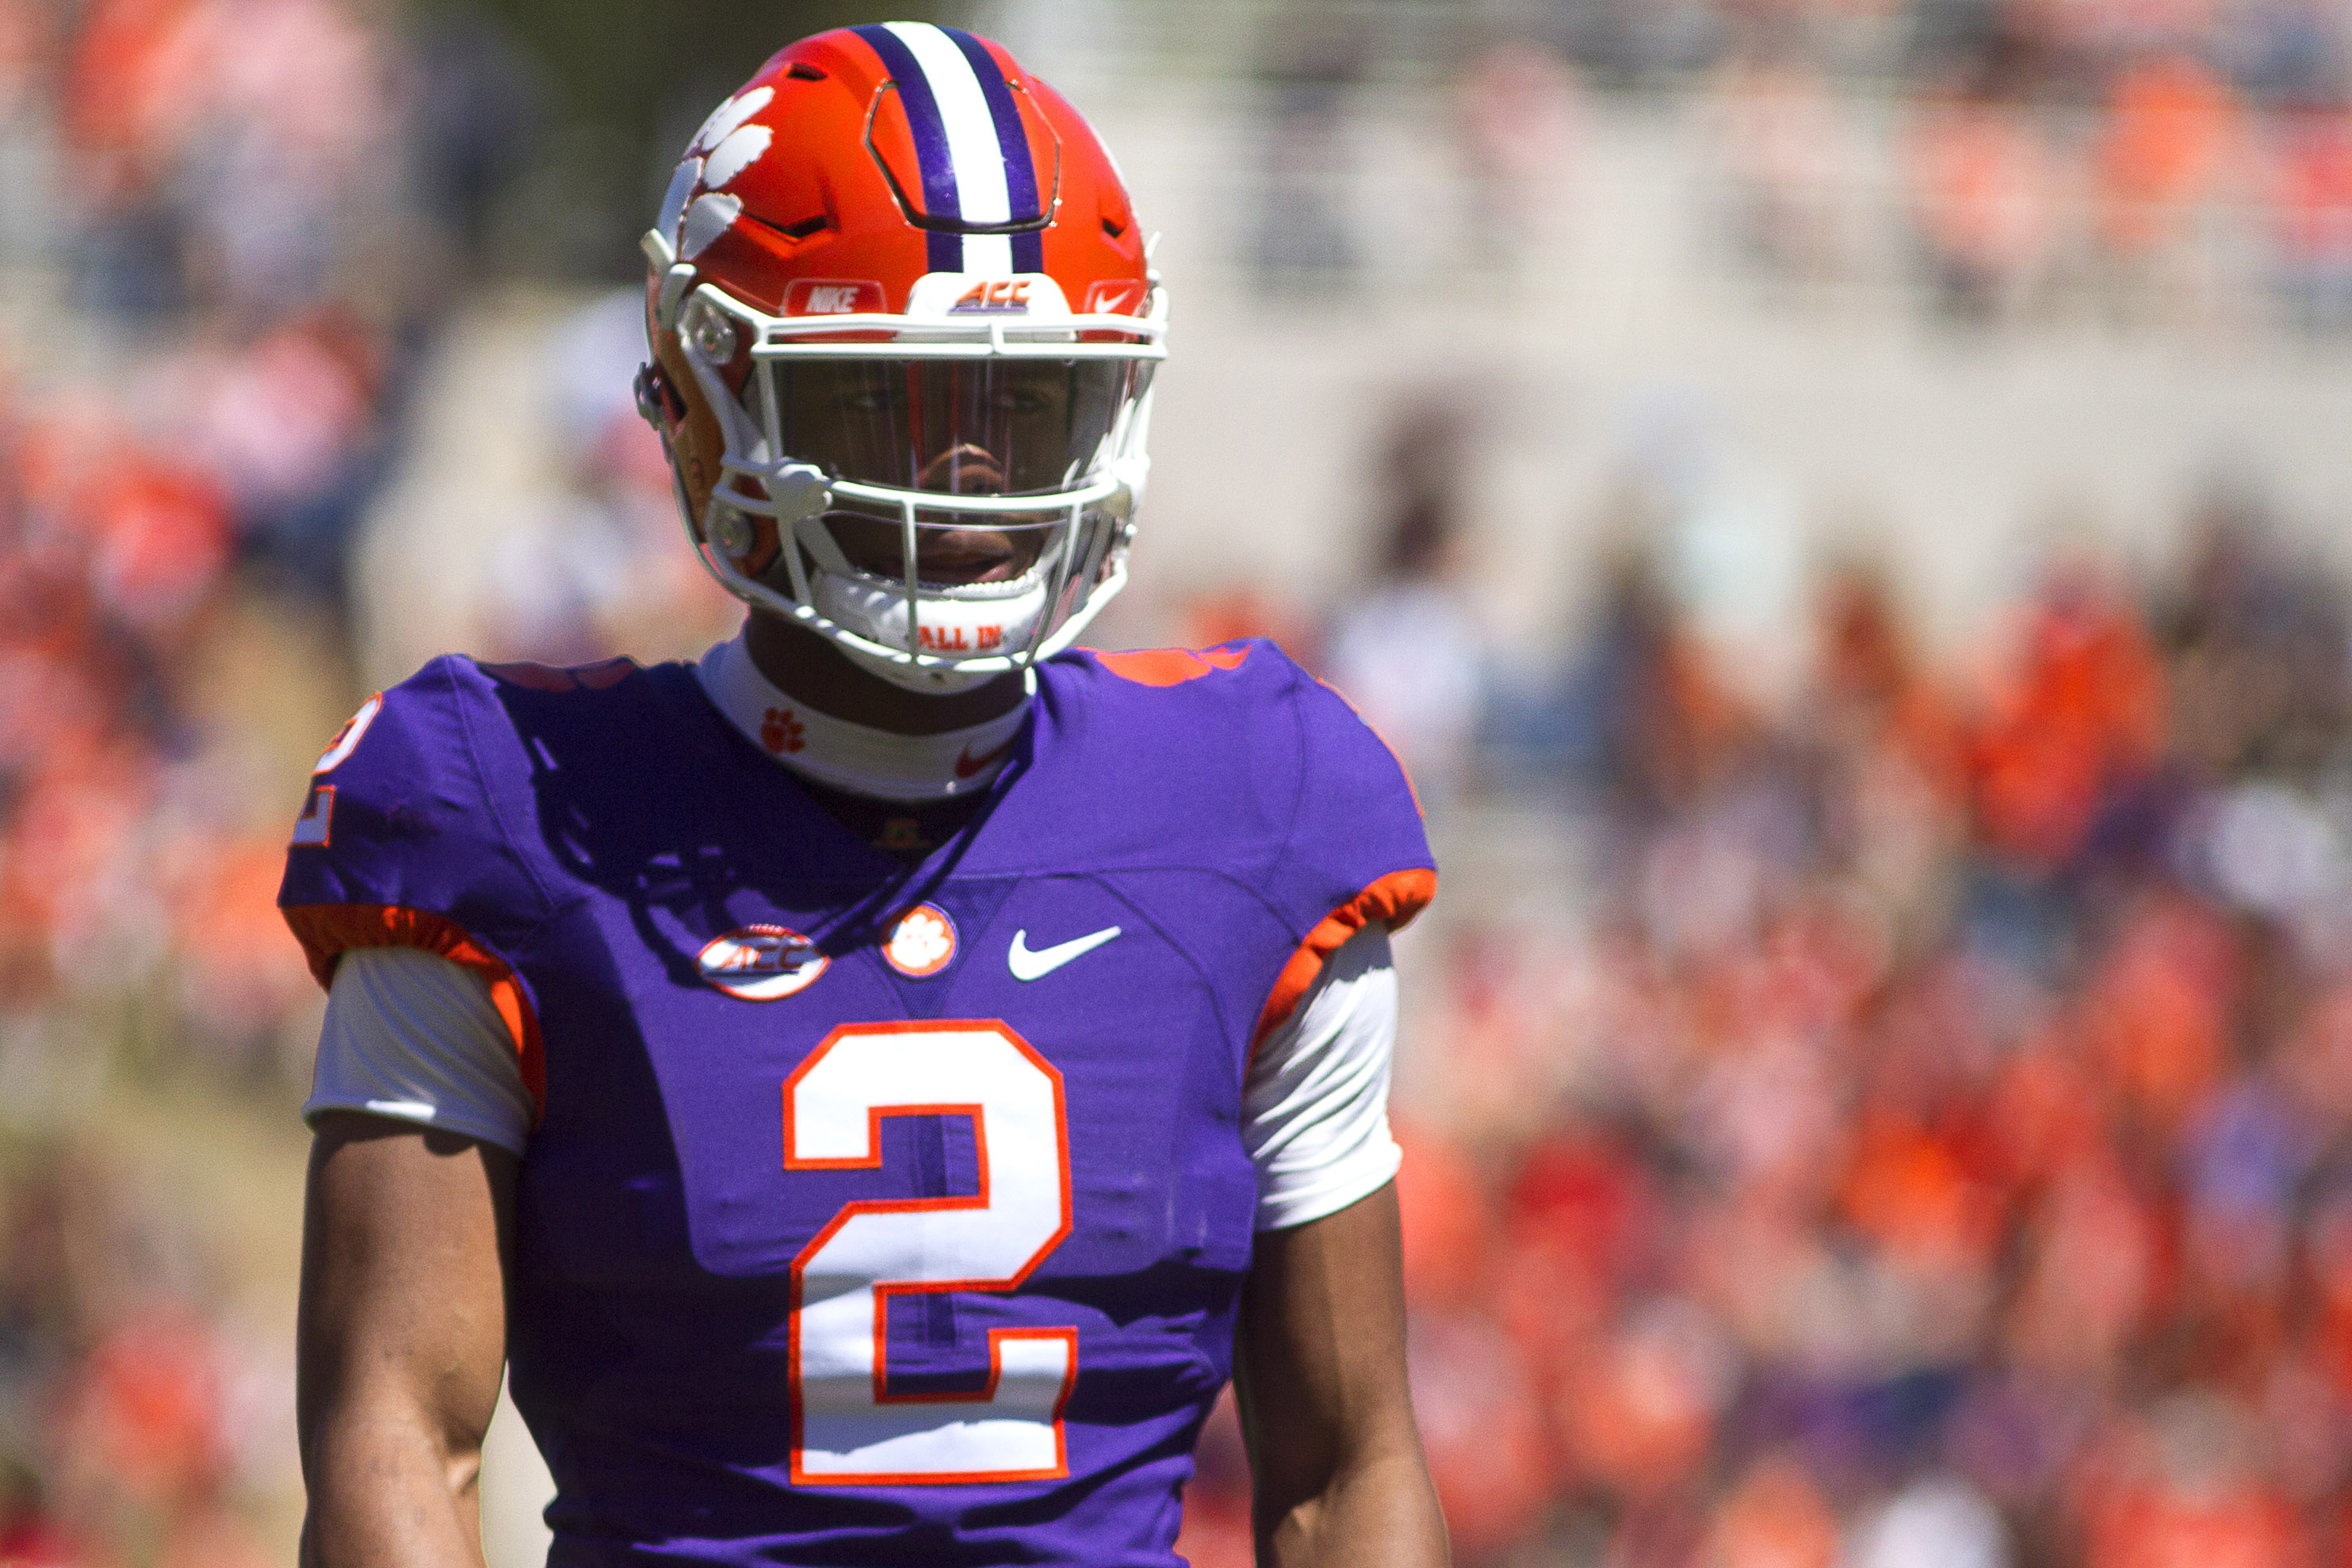 Clemson quarterback Kelly Bryant the returning starter was first on the depth chart released by the Tigers on Wednesday and freshman Trevor Lawrence was